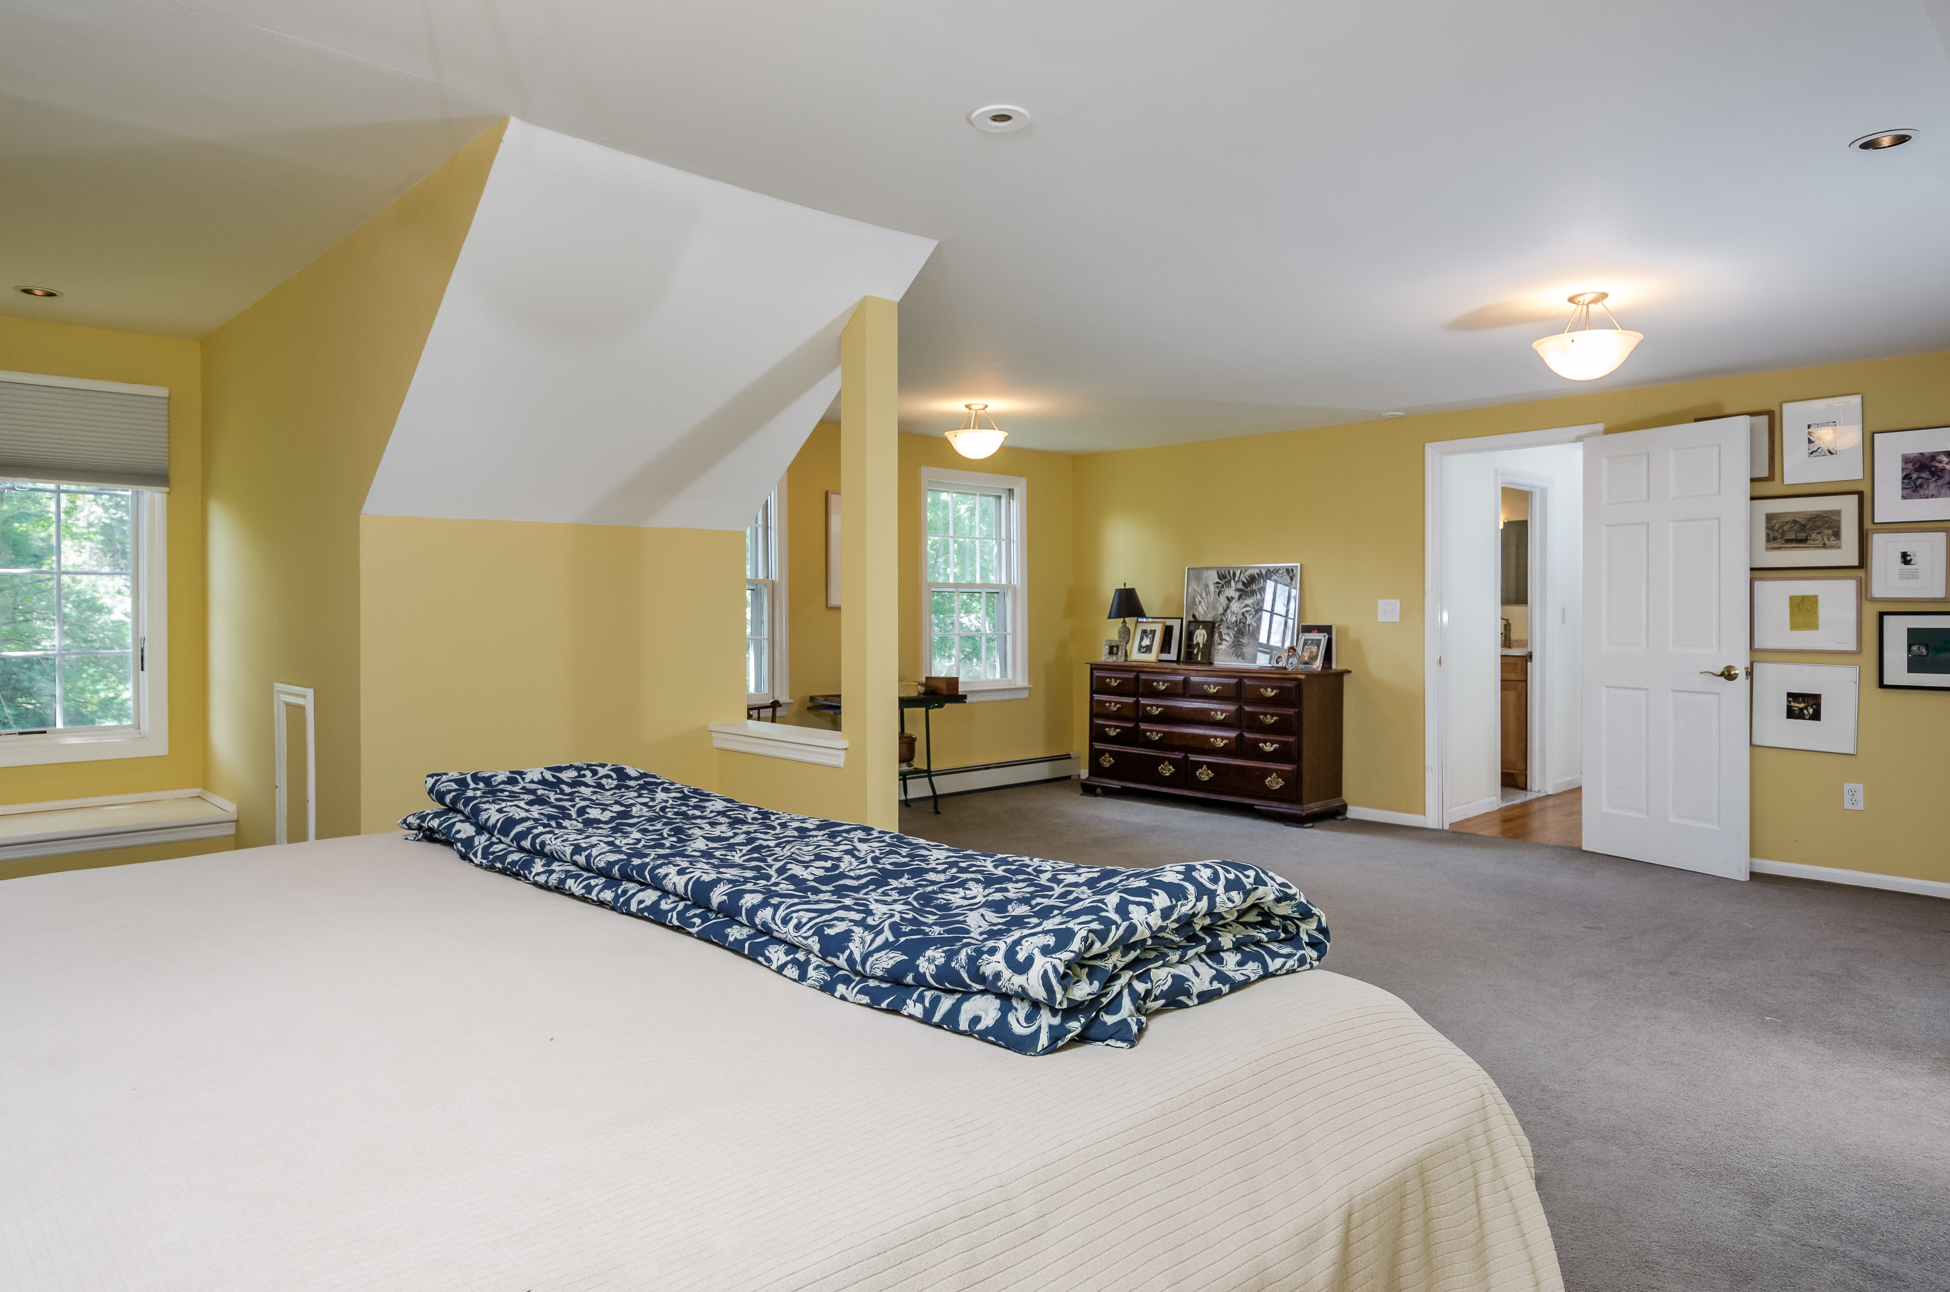 Additional photo for property listing at Engaging Design - Hopewell Township 1181 Bear Tavern Road 泰特斯维尔, 新泽西州 08560 美国